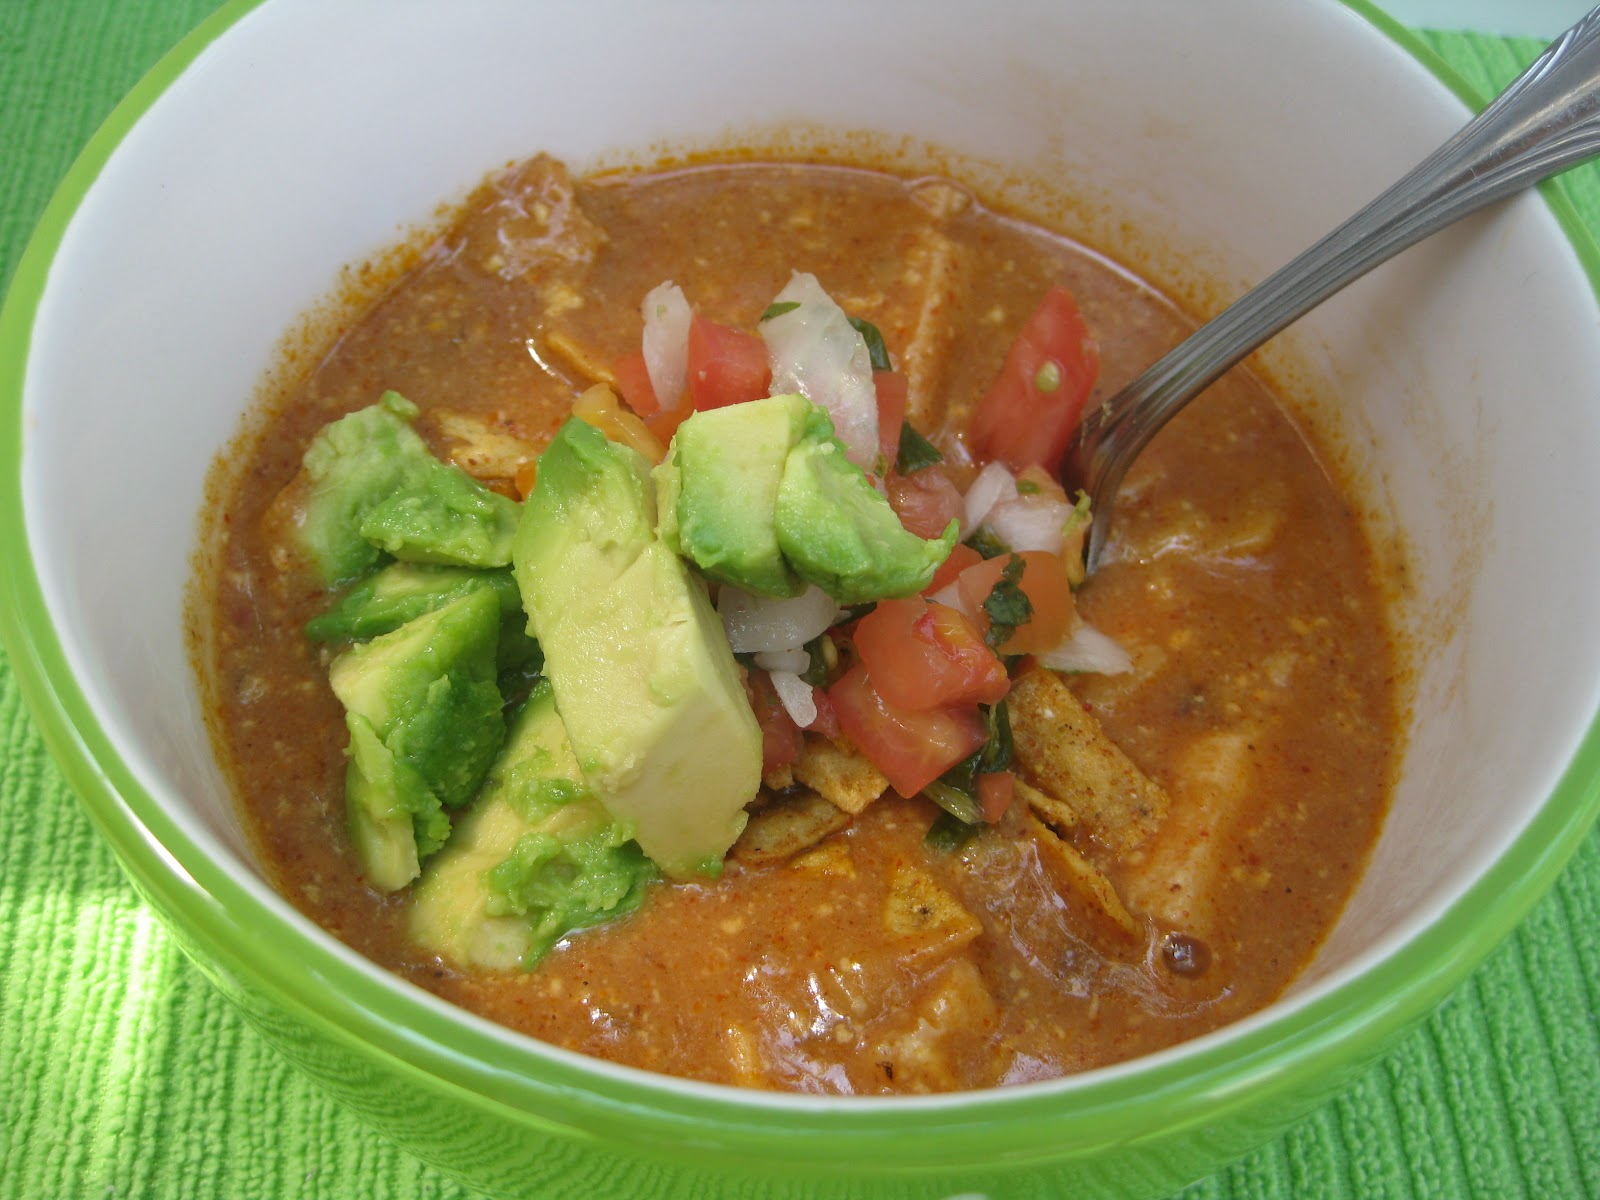 Heidi's Recipes: Crock Pot Chicken Tortilla Soup Recipe